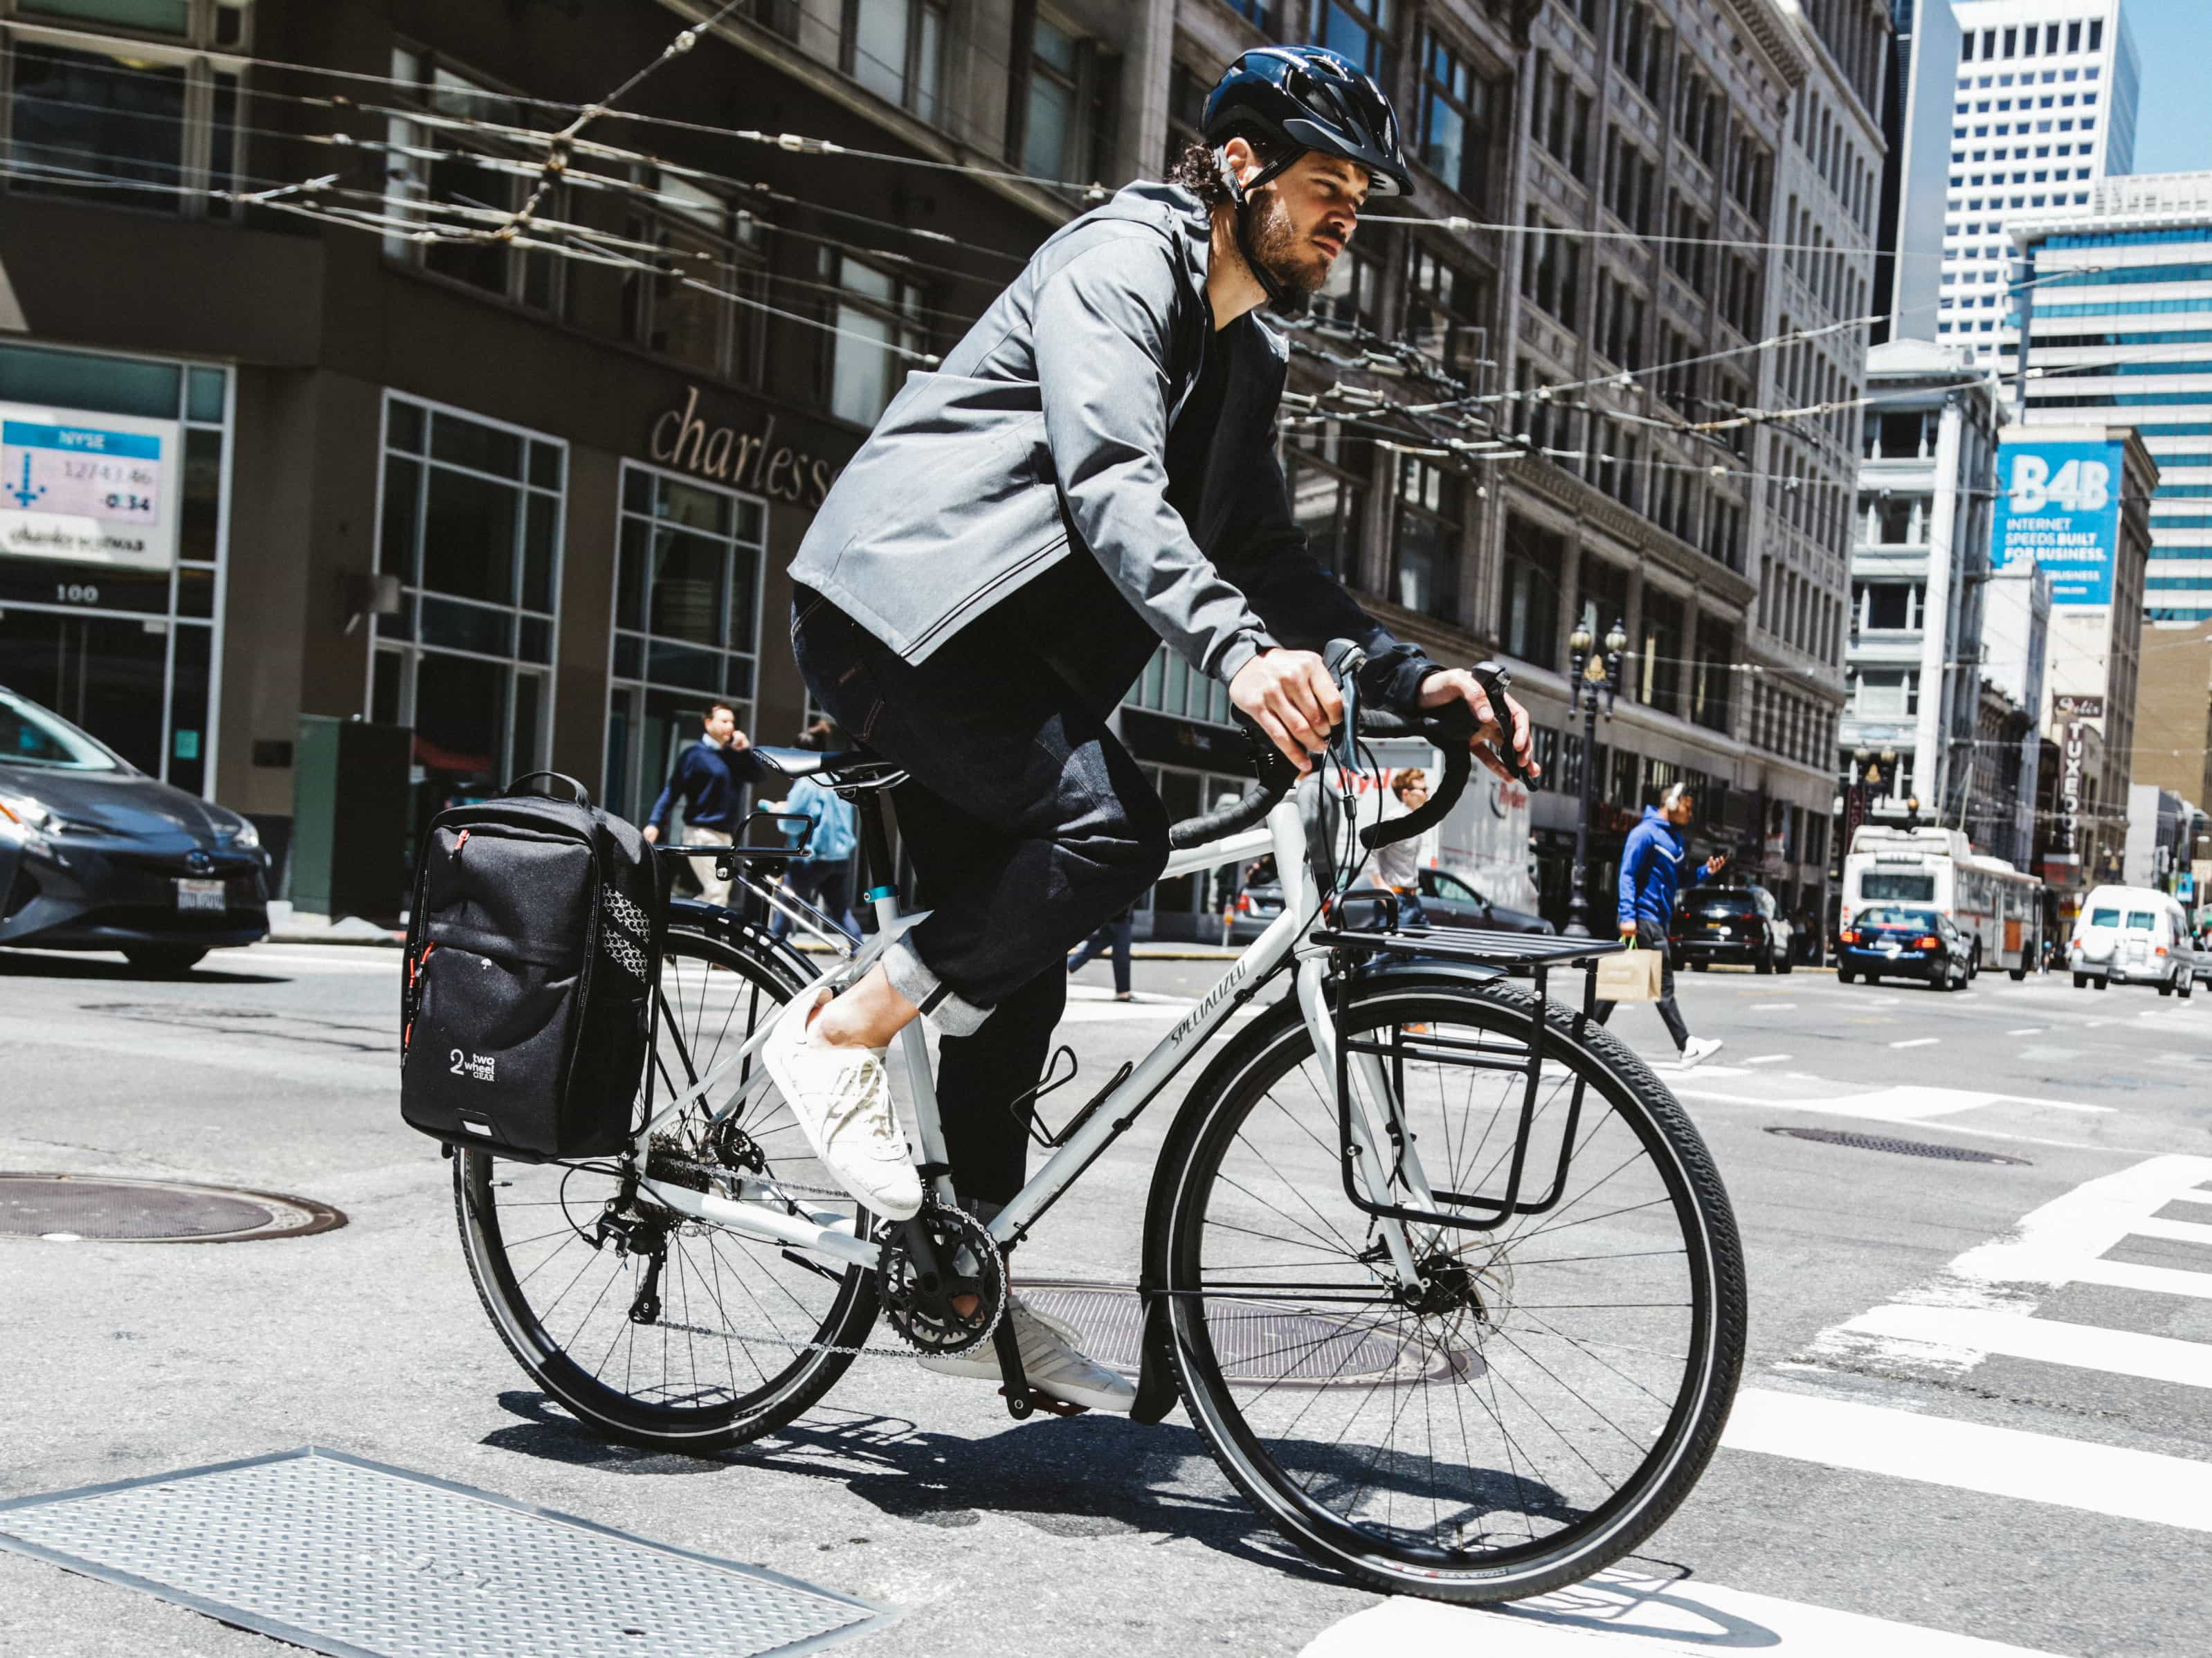 Black, Graphite - Bike Bags - Pannier Backpack Convertible (2018) - Bike to work